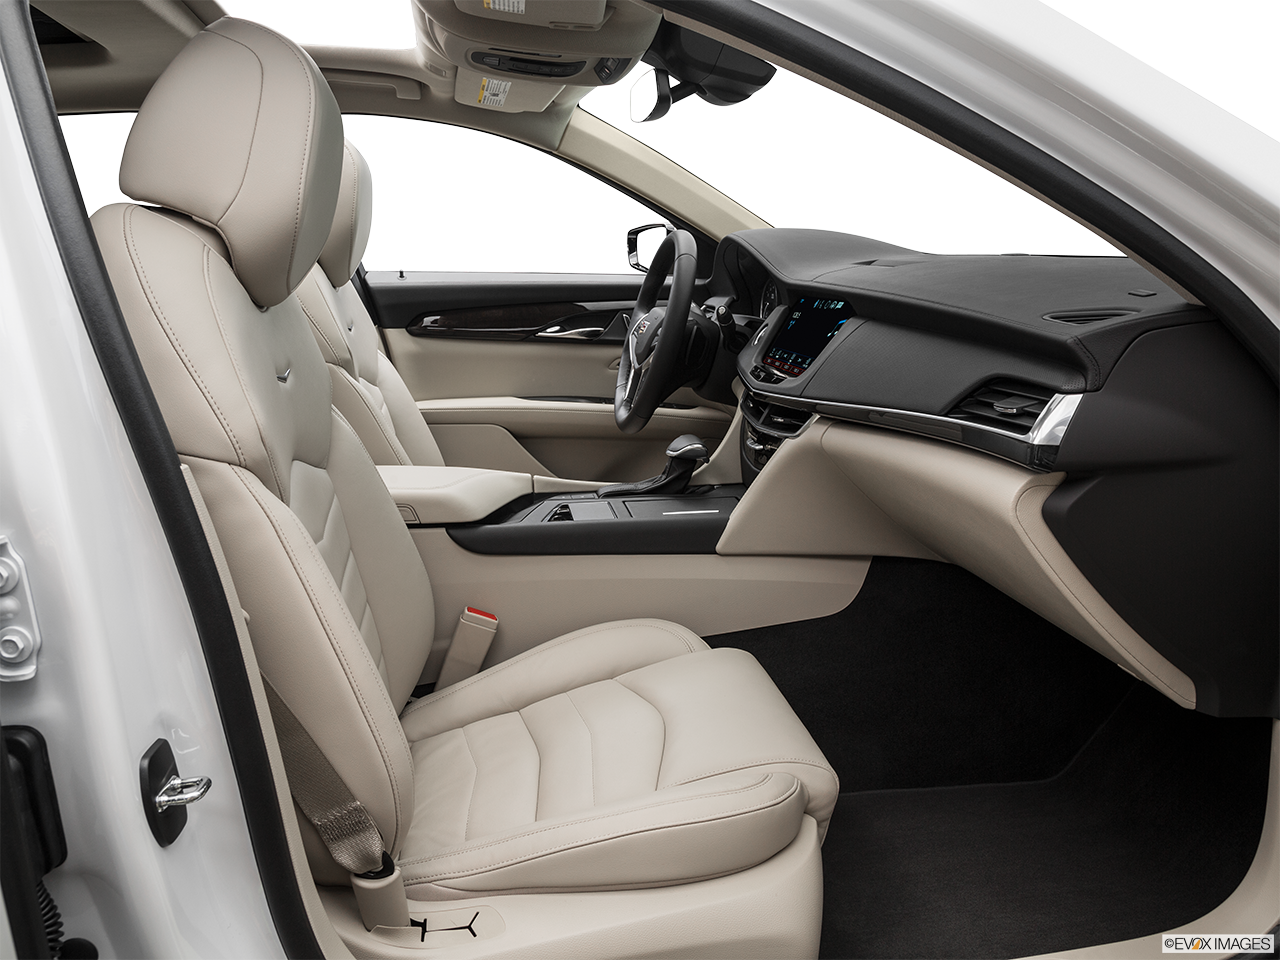 Interior view of the Cadillac CT6